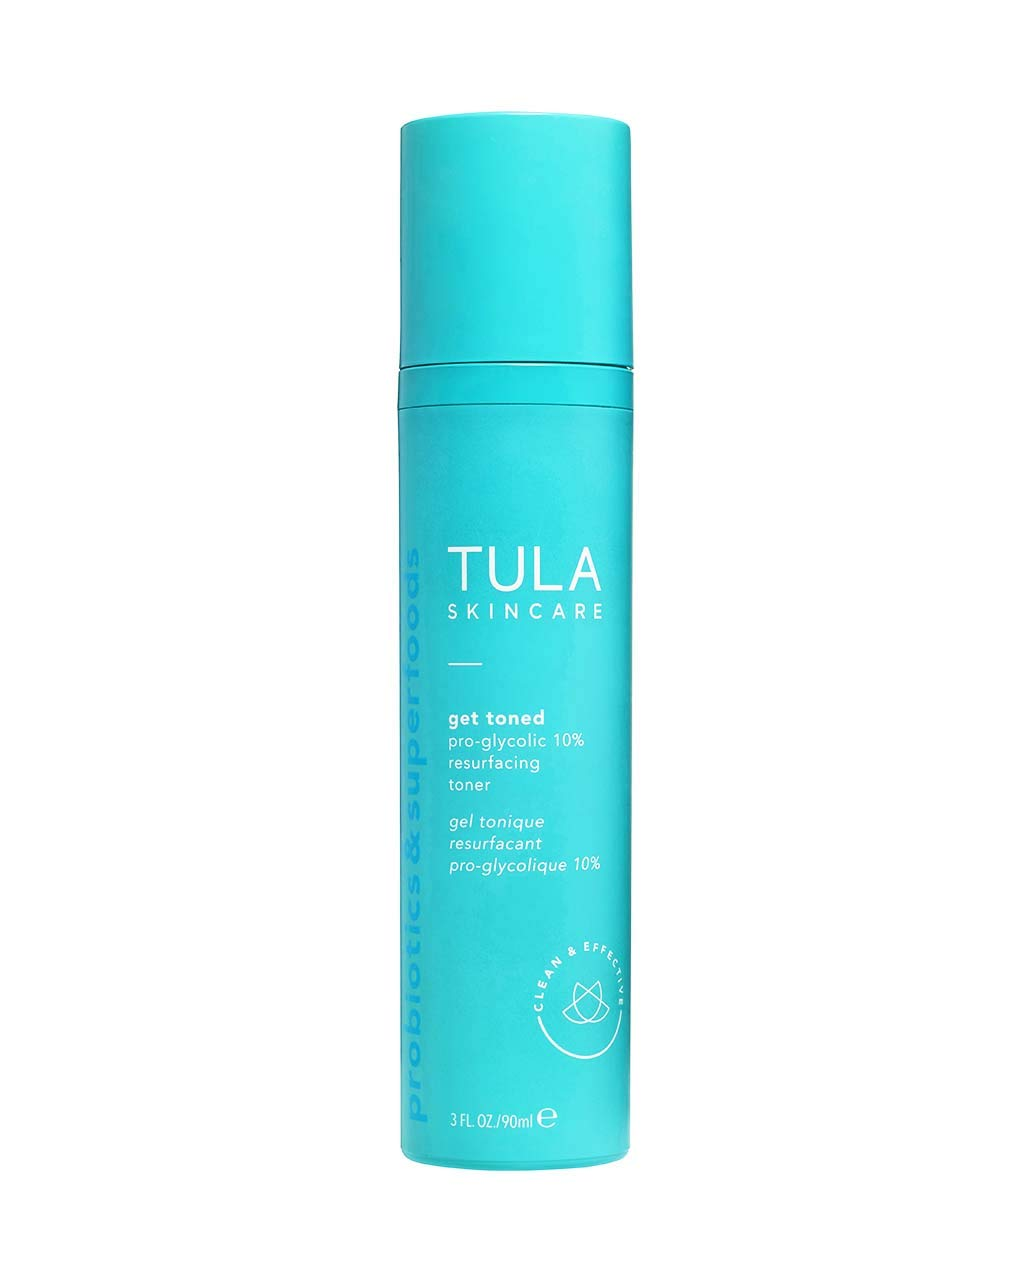 TULA Probiotic Skin Care 3-Step Balanced Skin Bundle | Full-Size Face Wash, Day & Night Face Moisturizer, Pro-Glycolic Resurfacing Face Toner | Best for Normal and Dry Skin